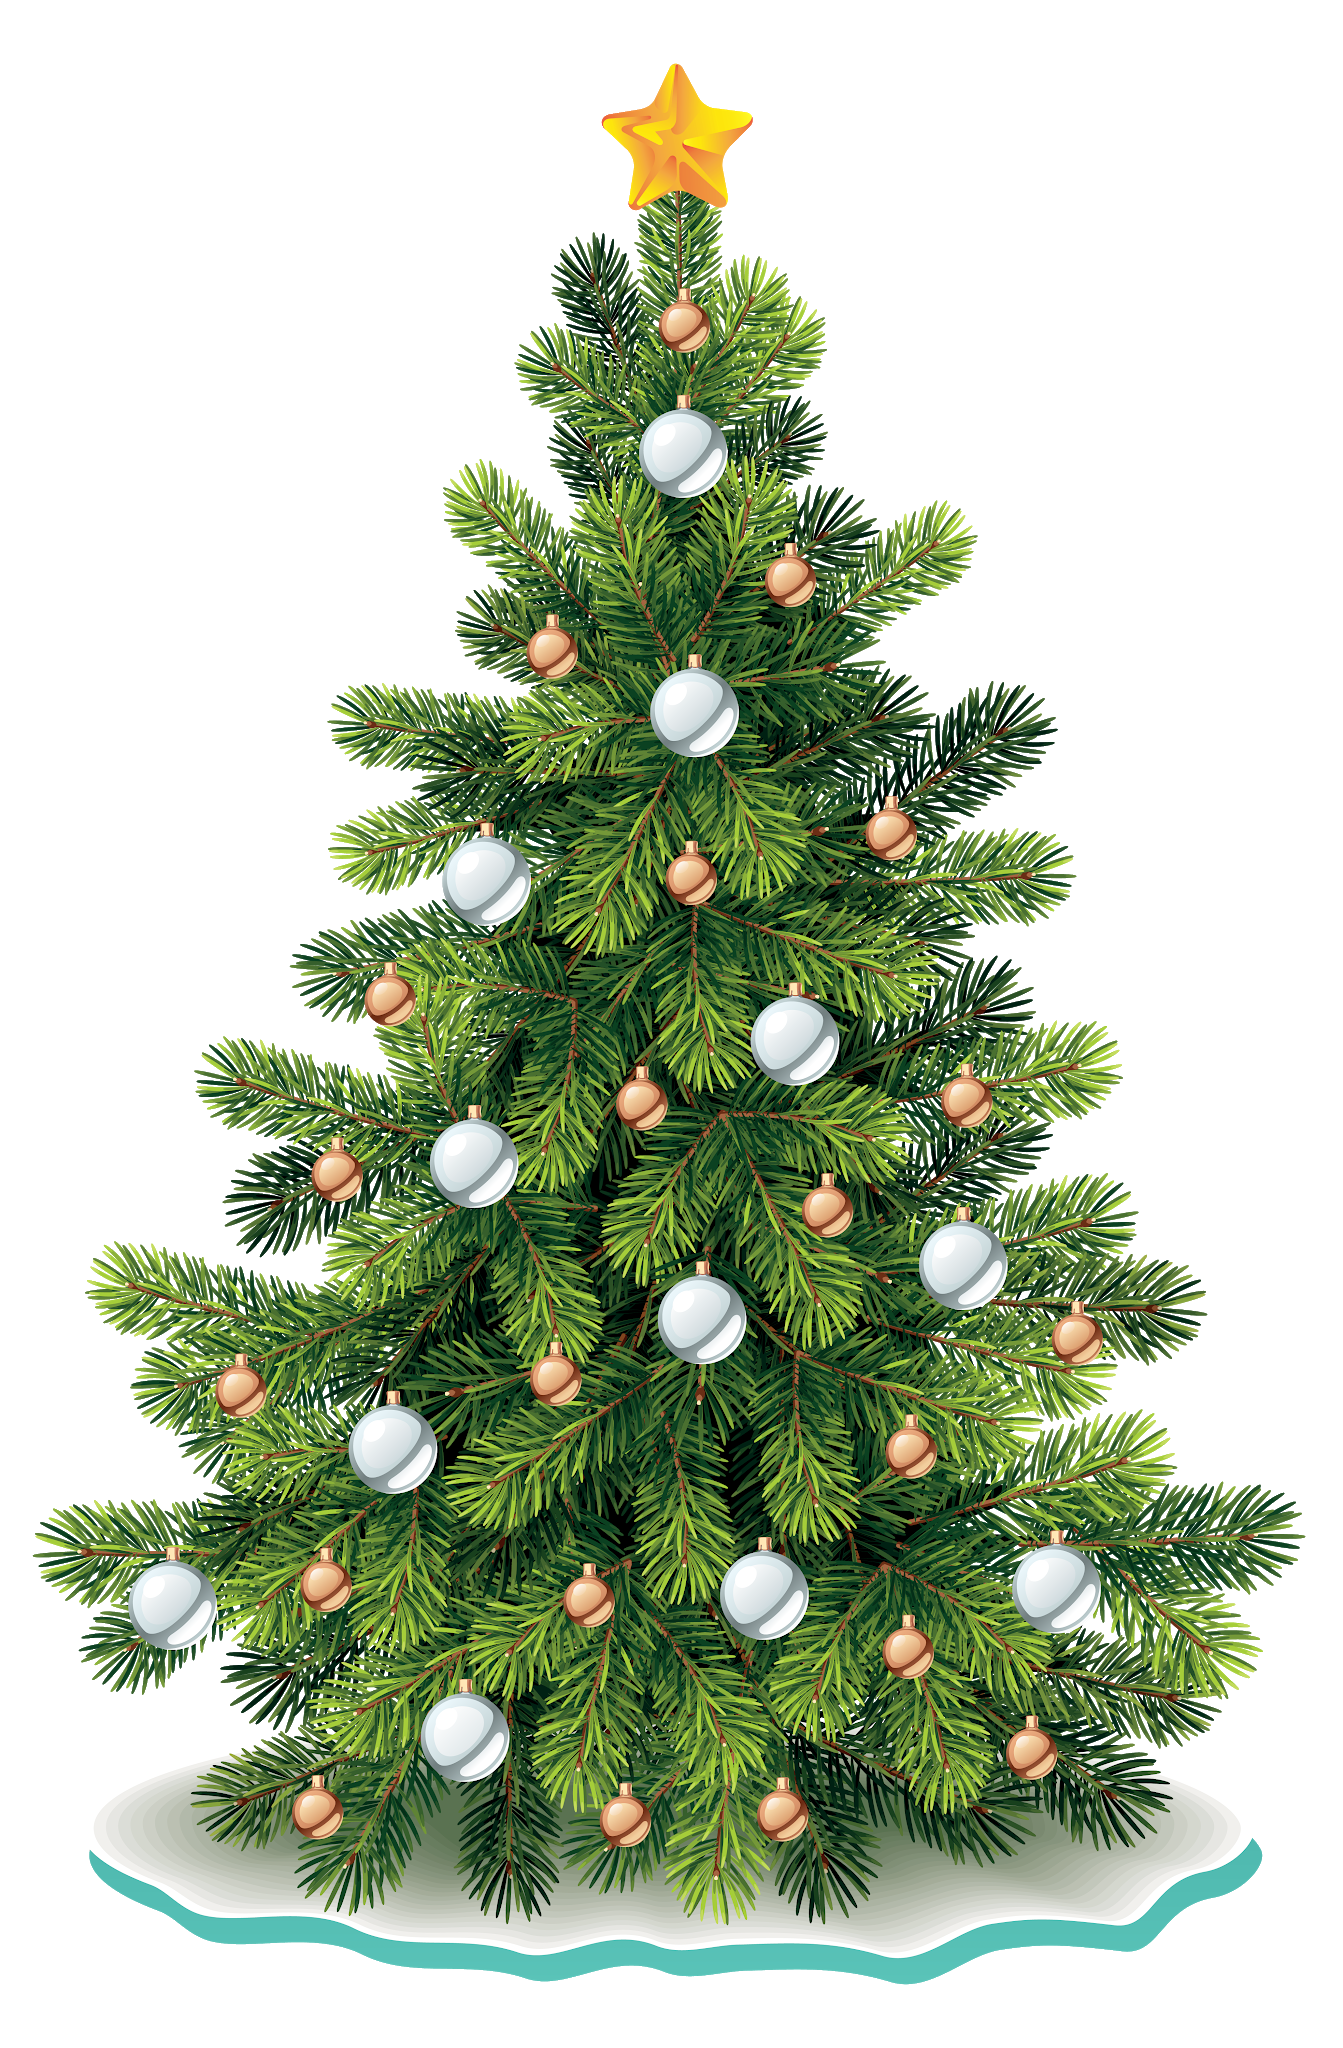 Pine clipart bunch tree. Pin by pngsector on